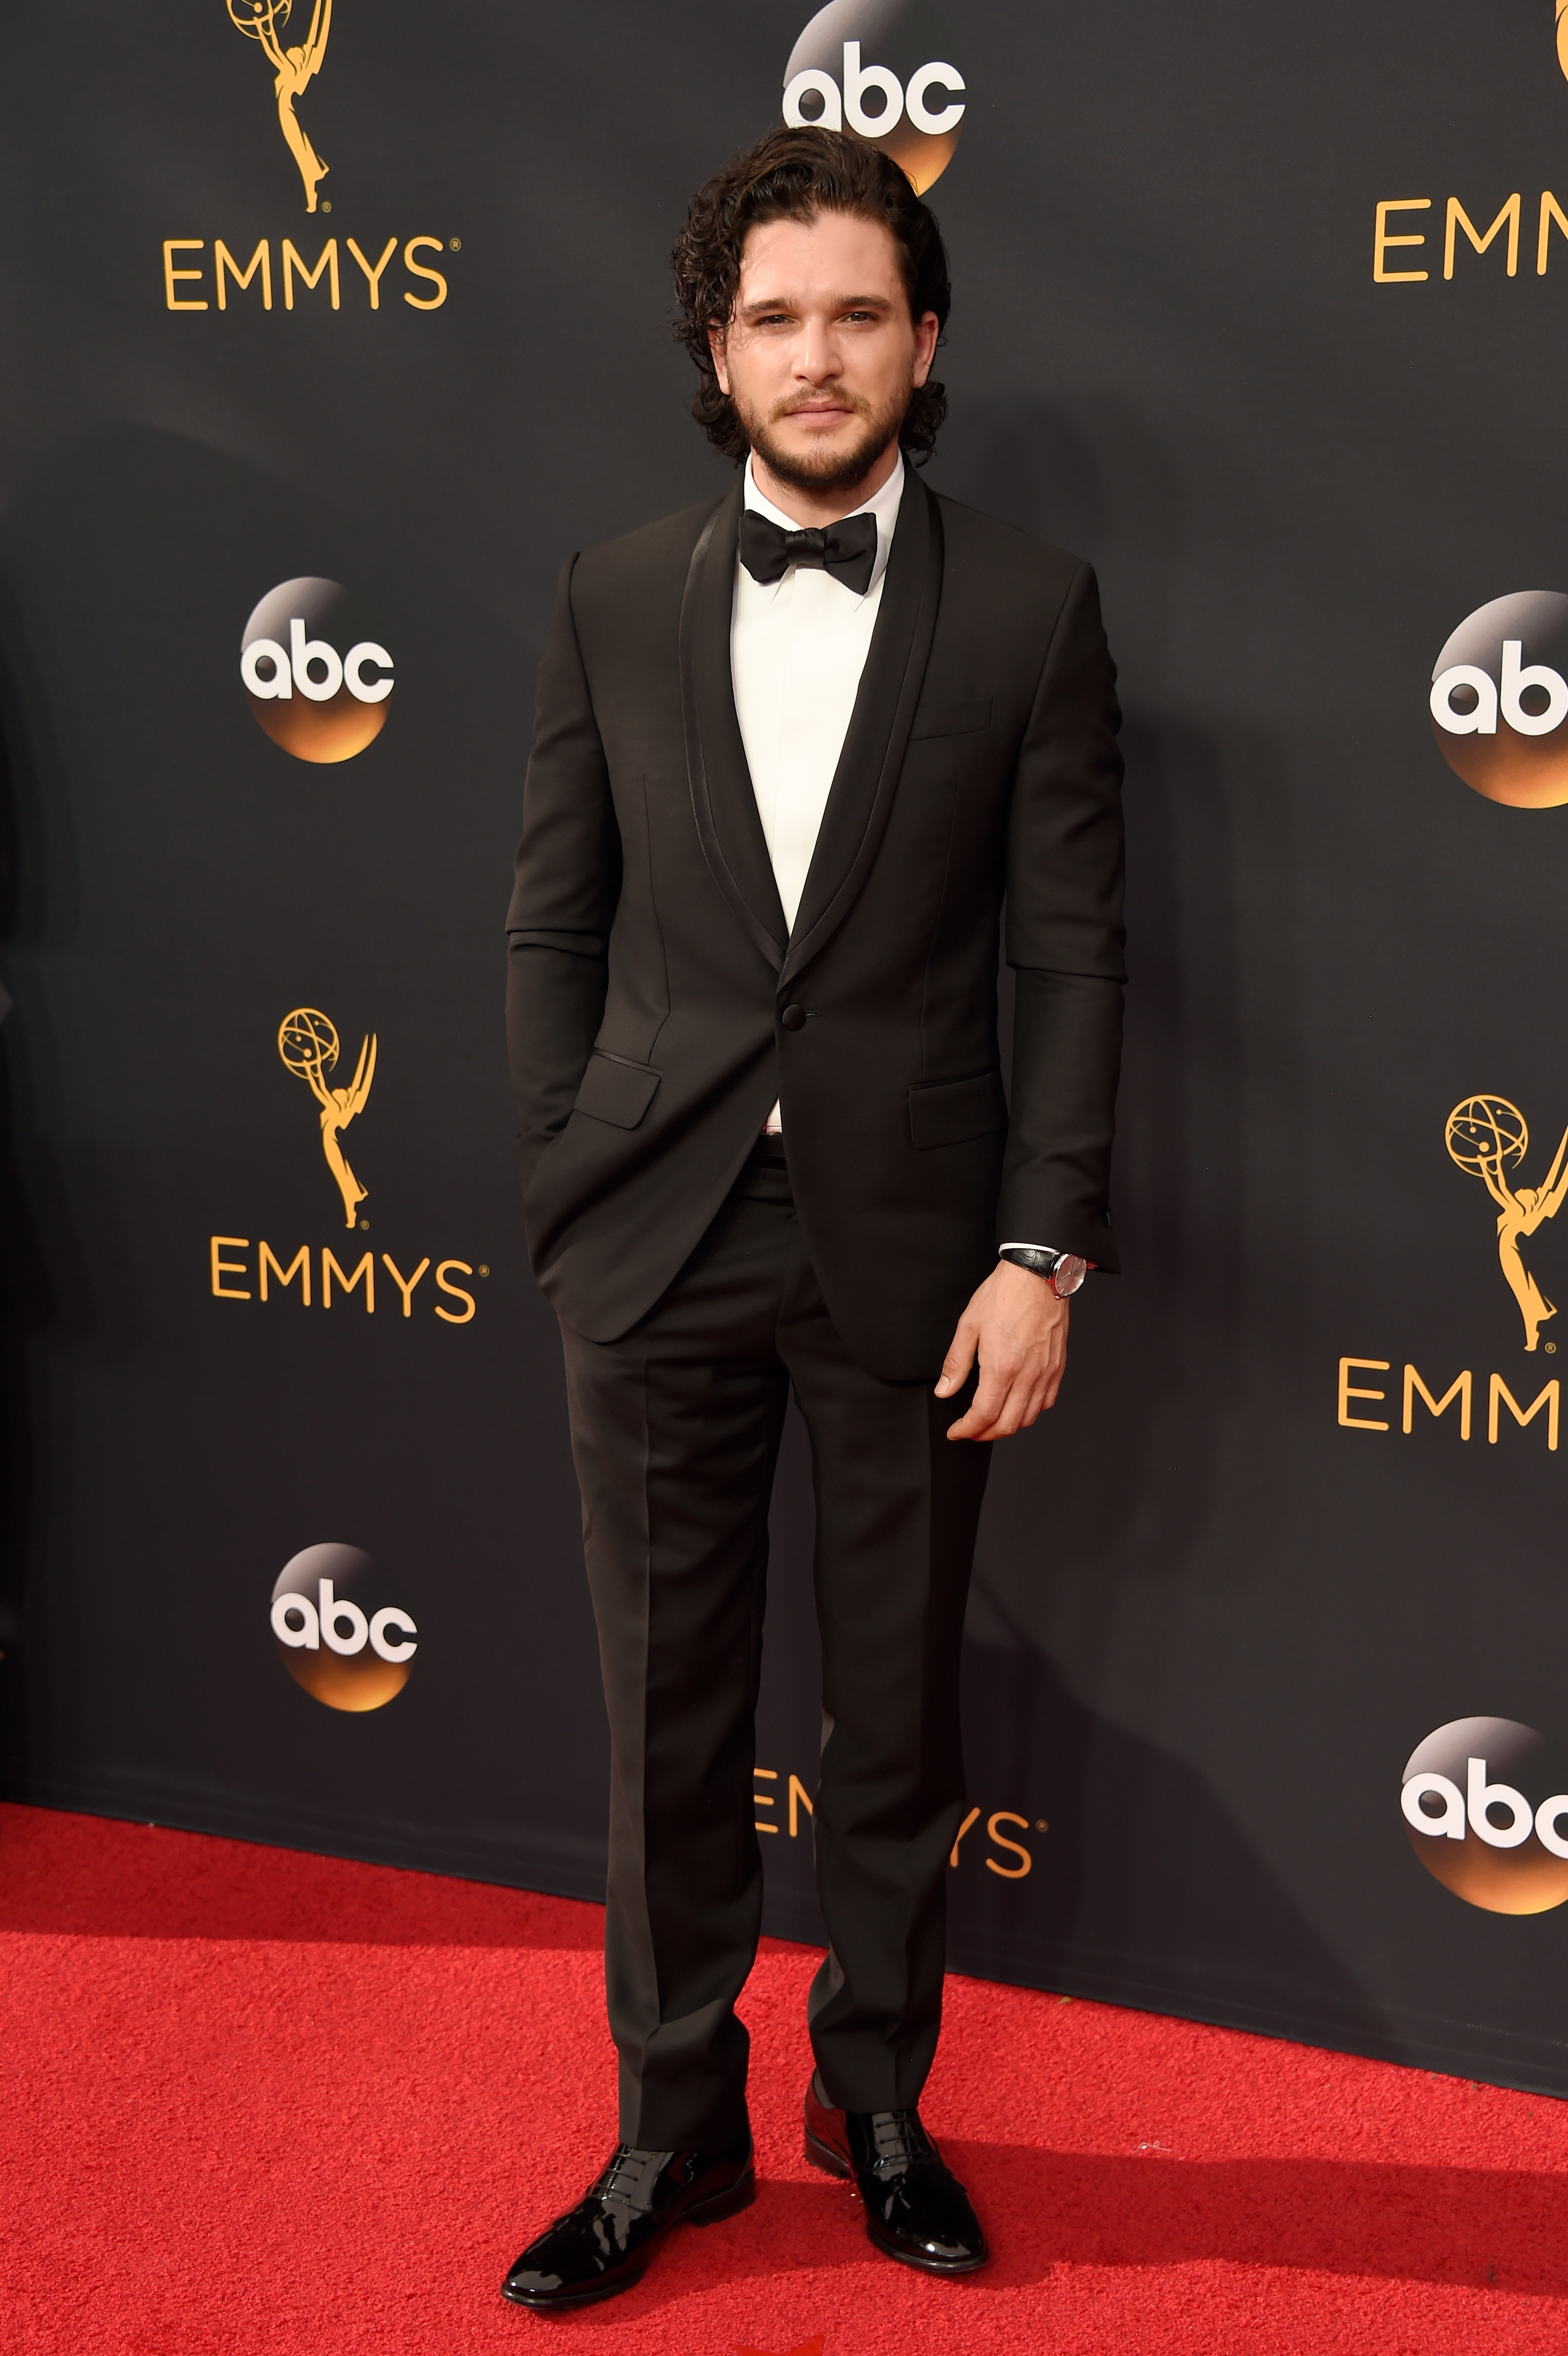 Kit Harrington arrives at the 68th Annual Primetime Emmy Awards at Microsoft Theater on Sept. 18, 2016 in Los Angeles.